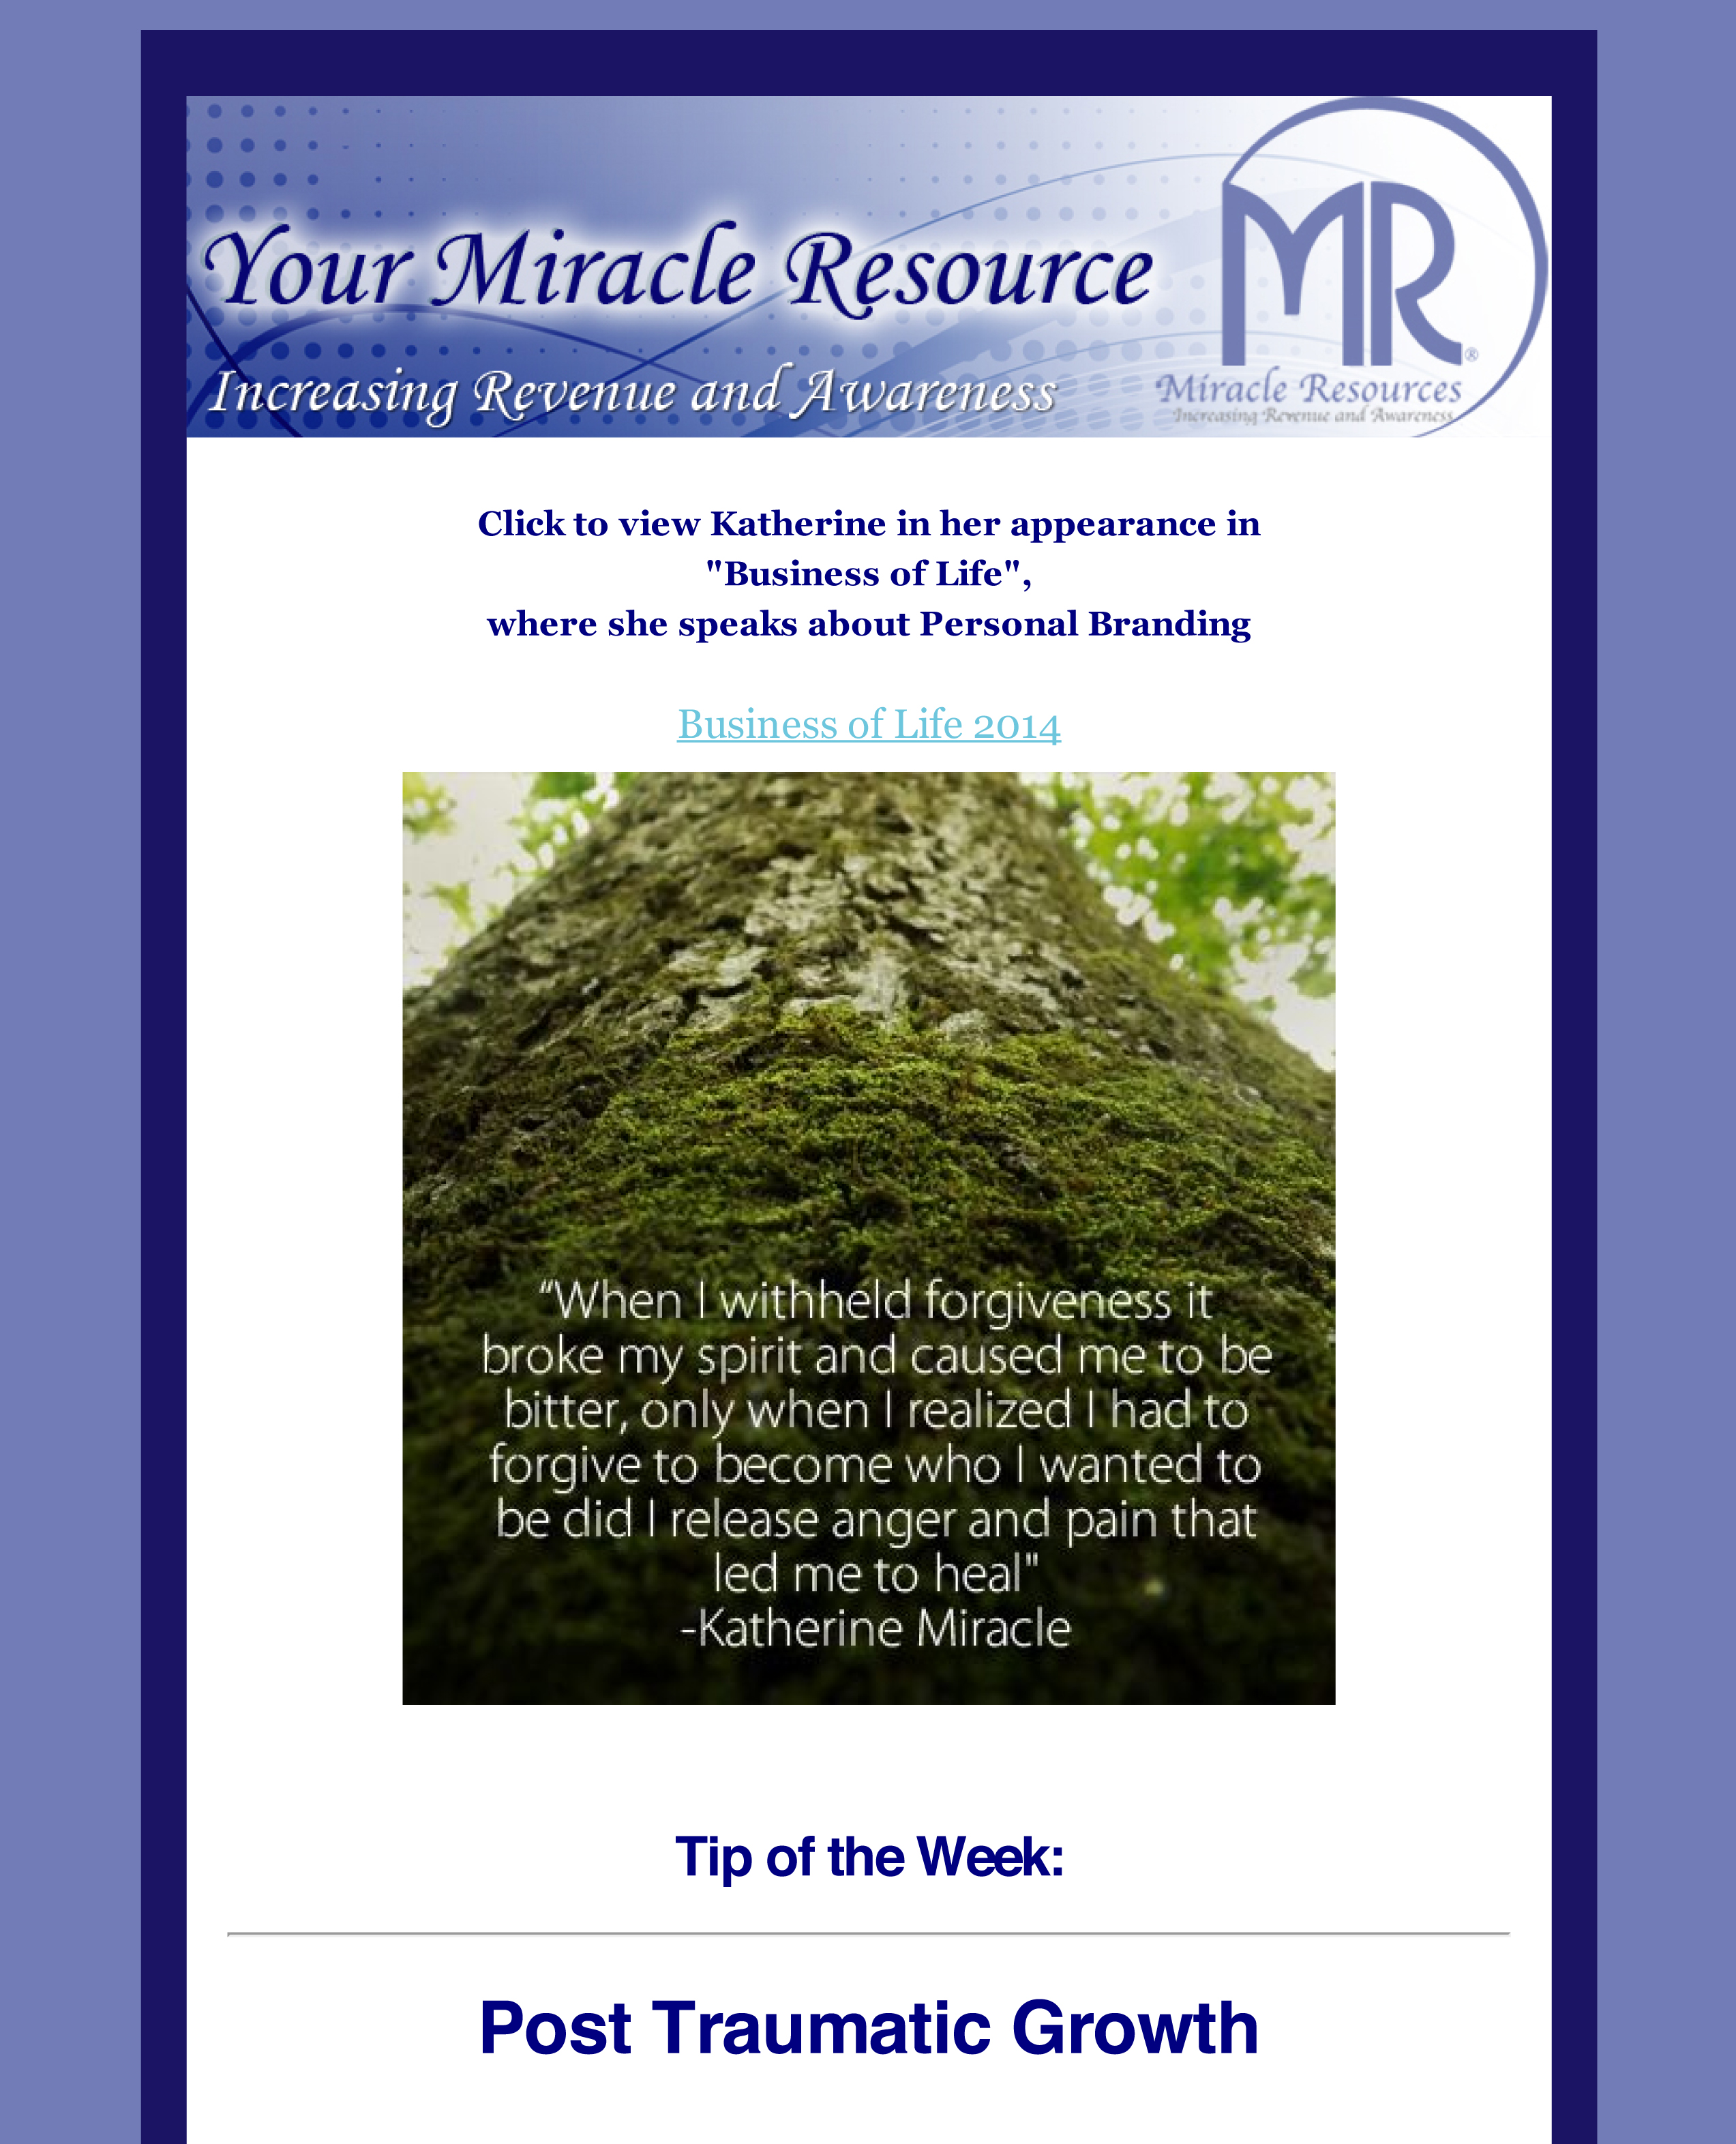 Tip of the Week: Post Traumatic Growth